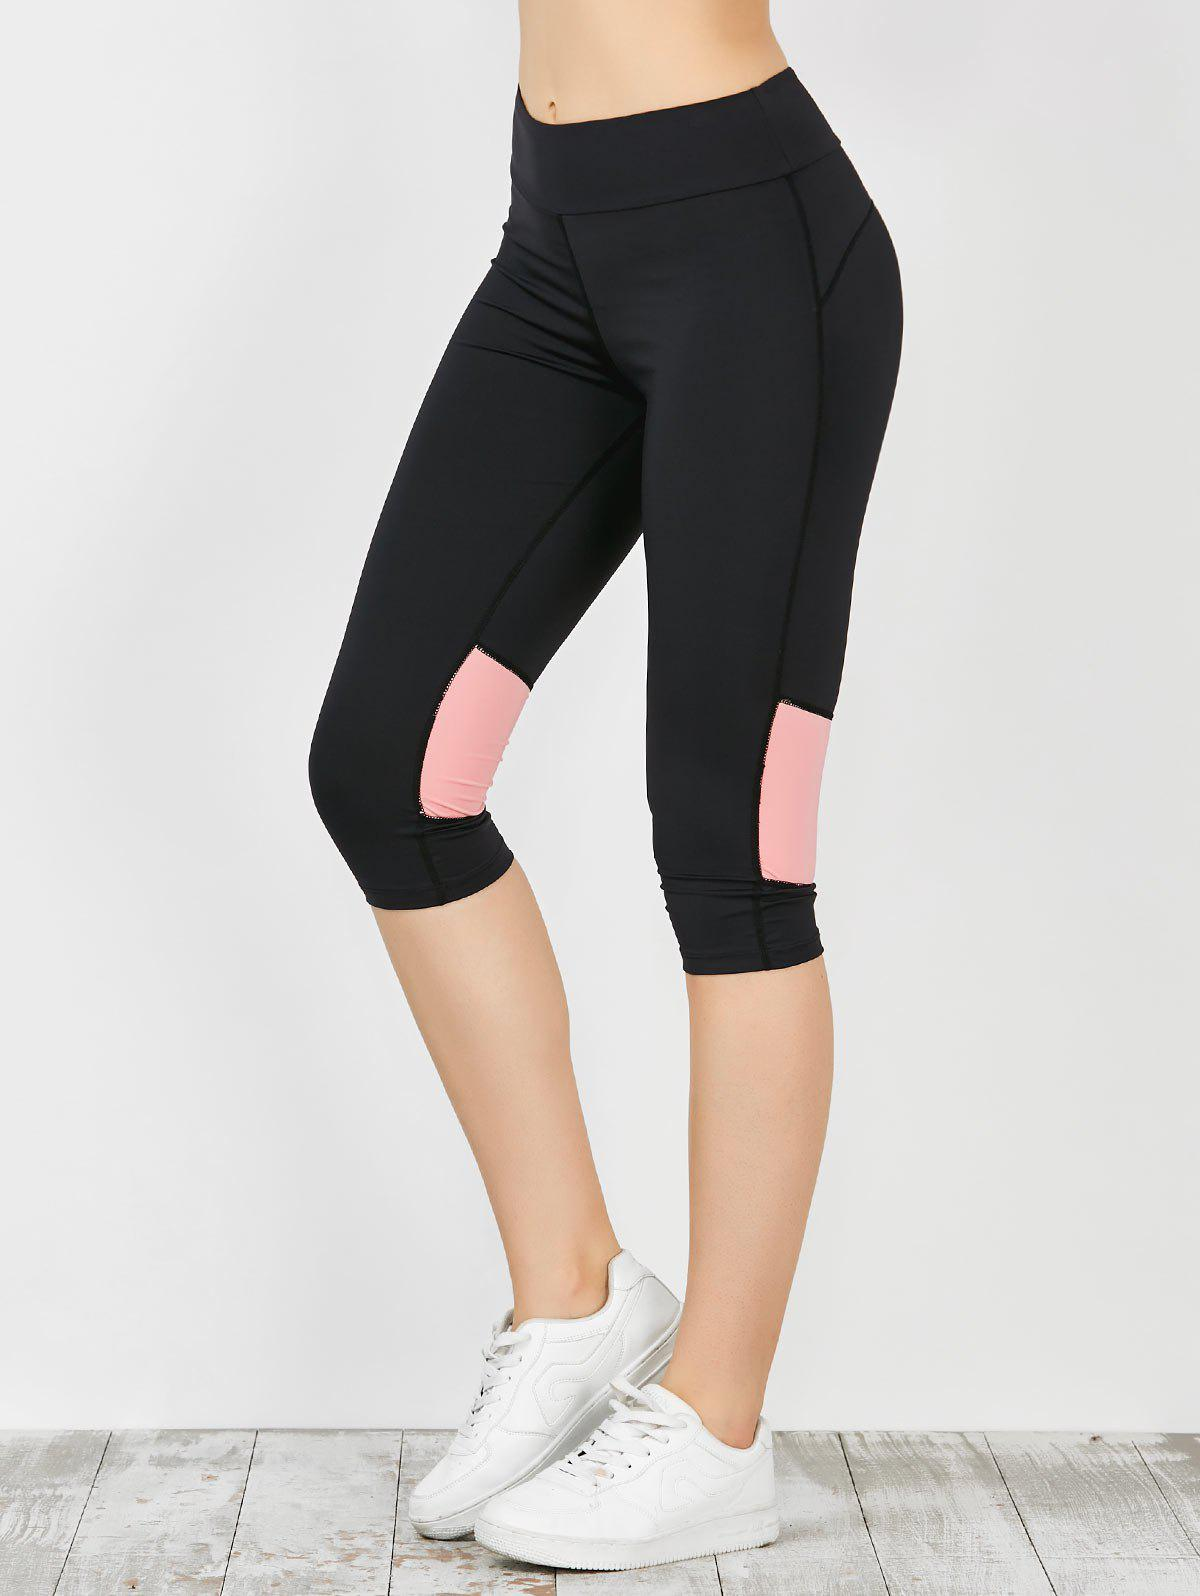 Two Tone Workout Capri Leggings - ROSE PÂLE L